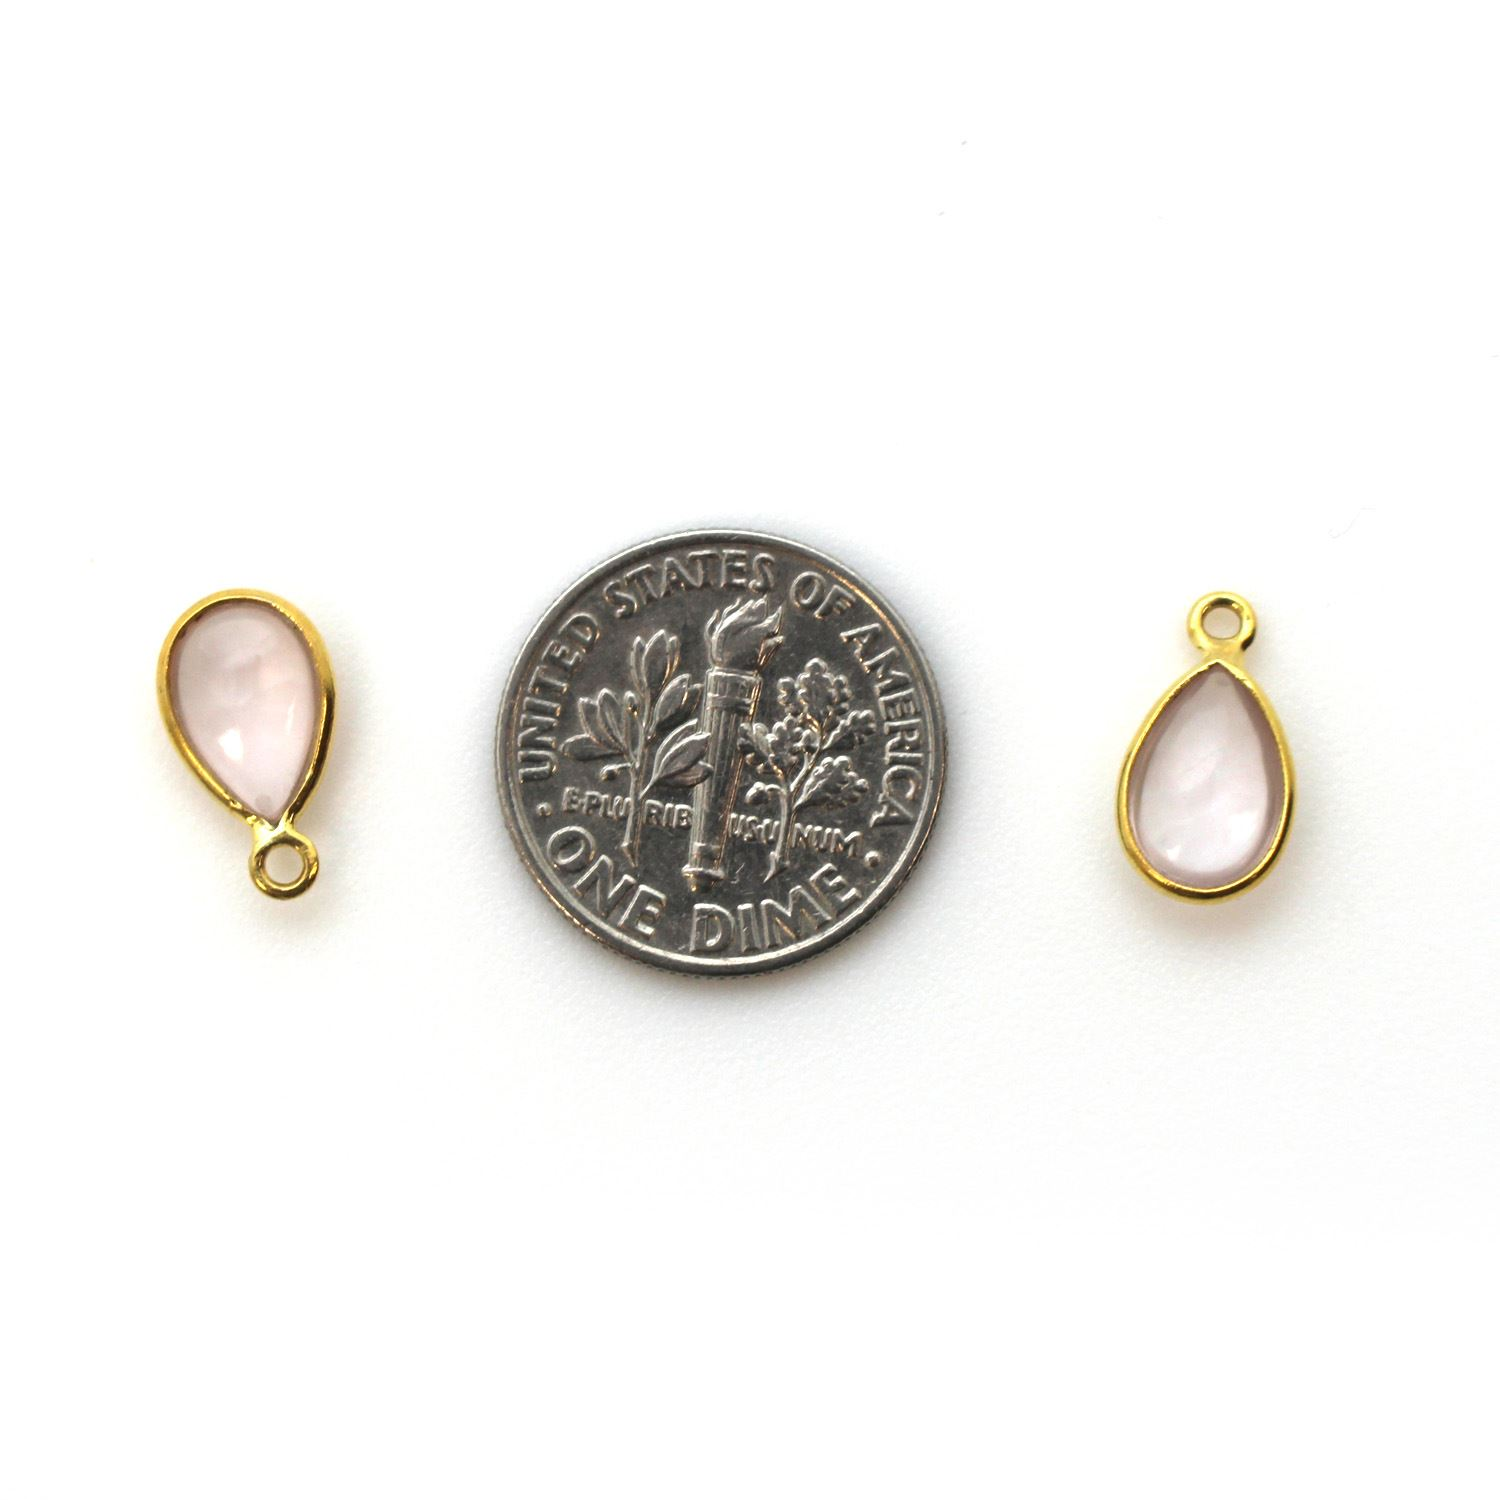 Bezel Charm Pendant - Gold Plated Sterling Silver Charm - Natural Rose Quartz - Tiny Teardrop Shape